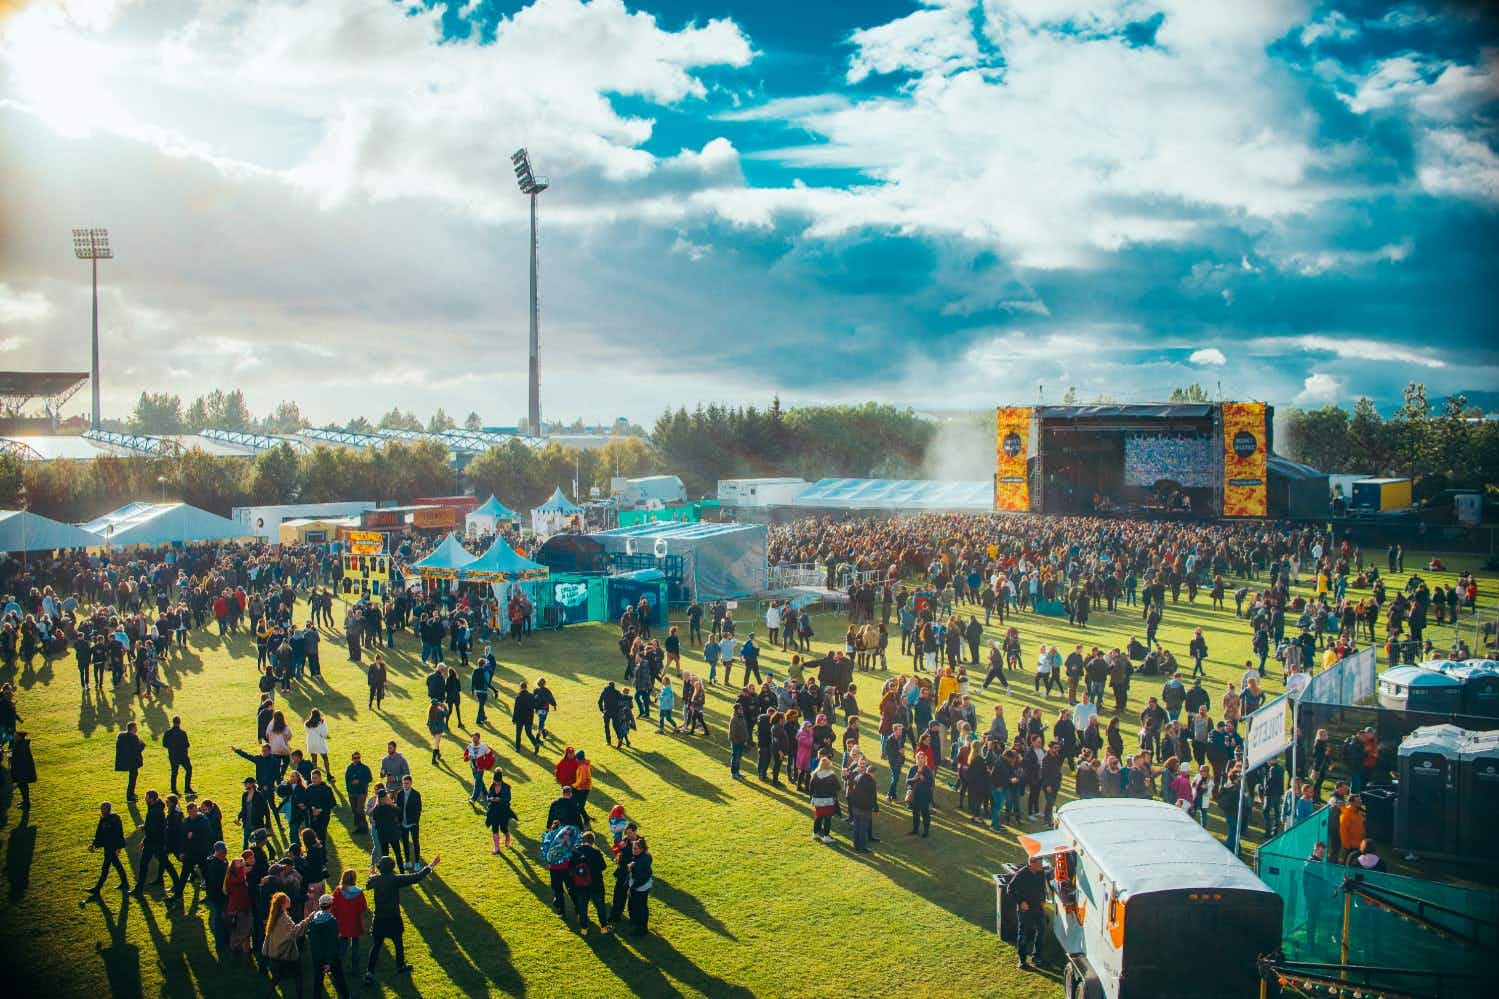 At $1 million a ticket, is this Icelandic festival the most expensive in the world?